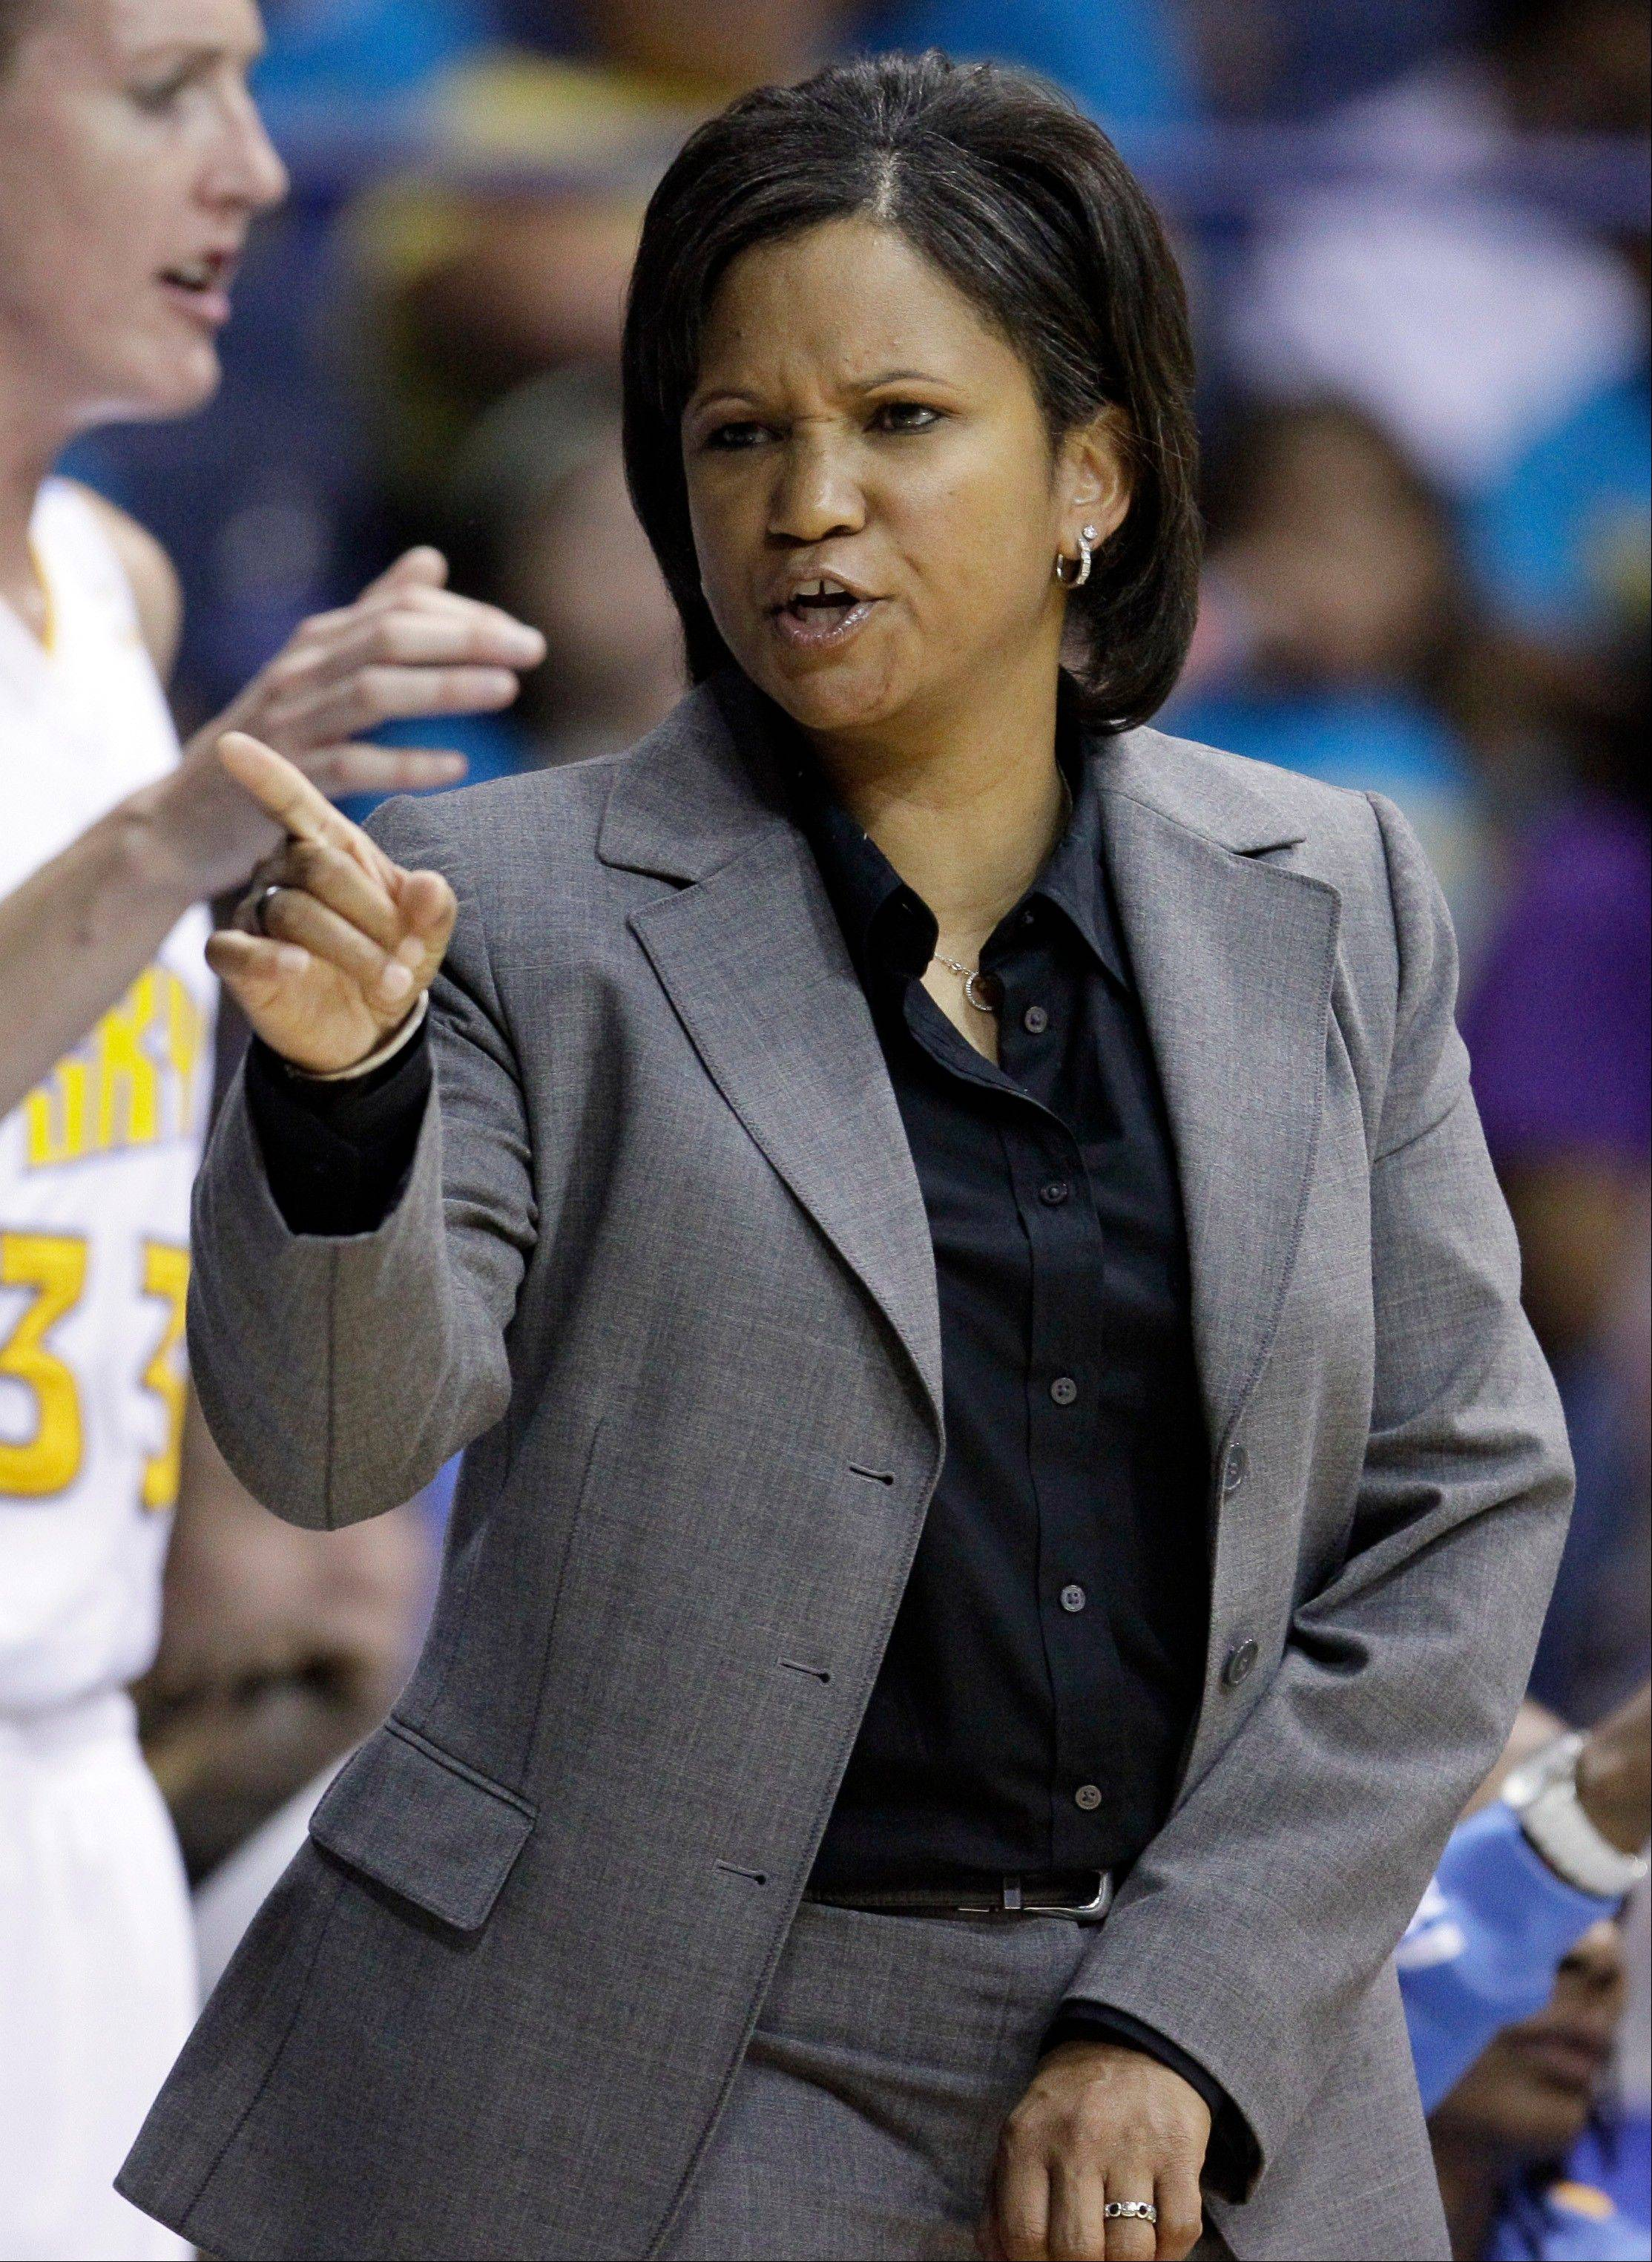 Chicago Sky head coach Pokey Chatman yells her team during the first half of an WNBA basketball game against the Tulsa Shock on Wednesday, July 13, 2011, in Rosemont, Ill.